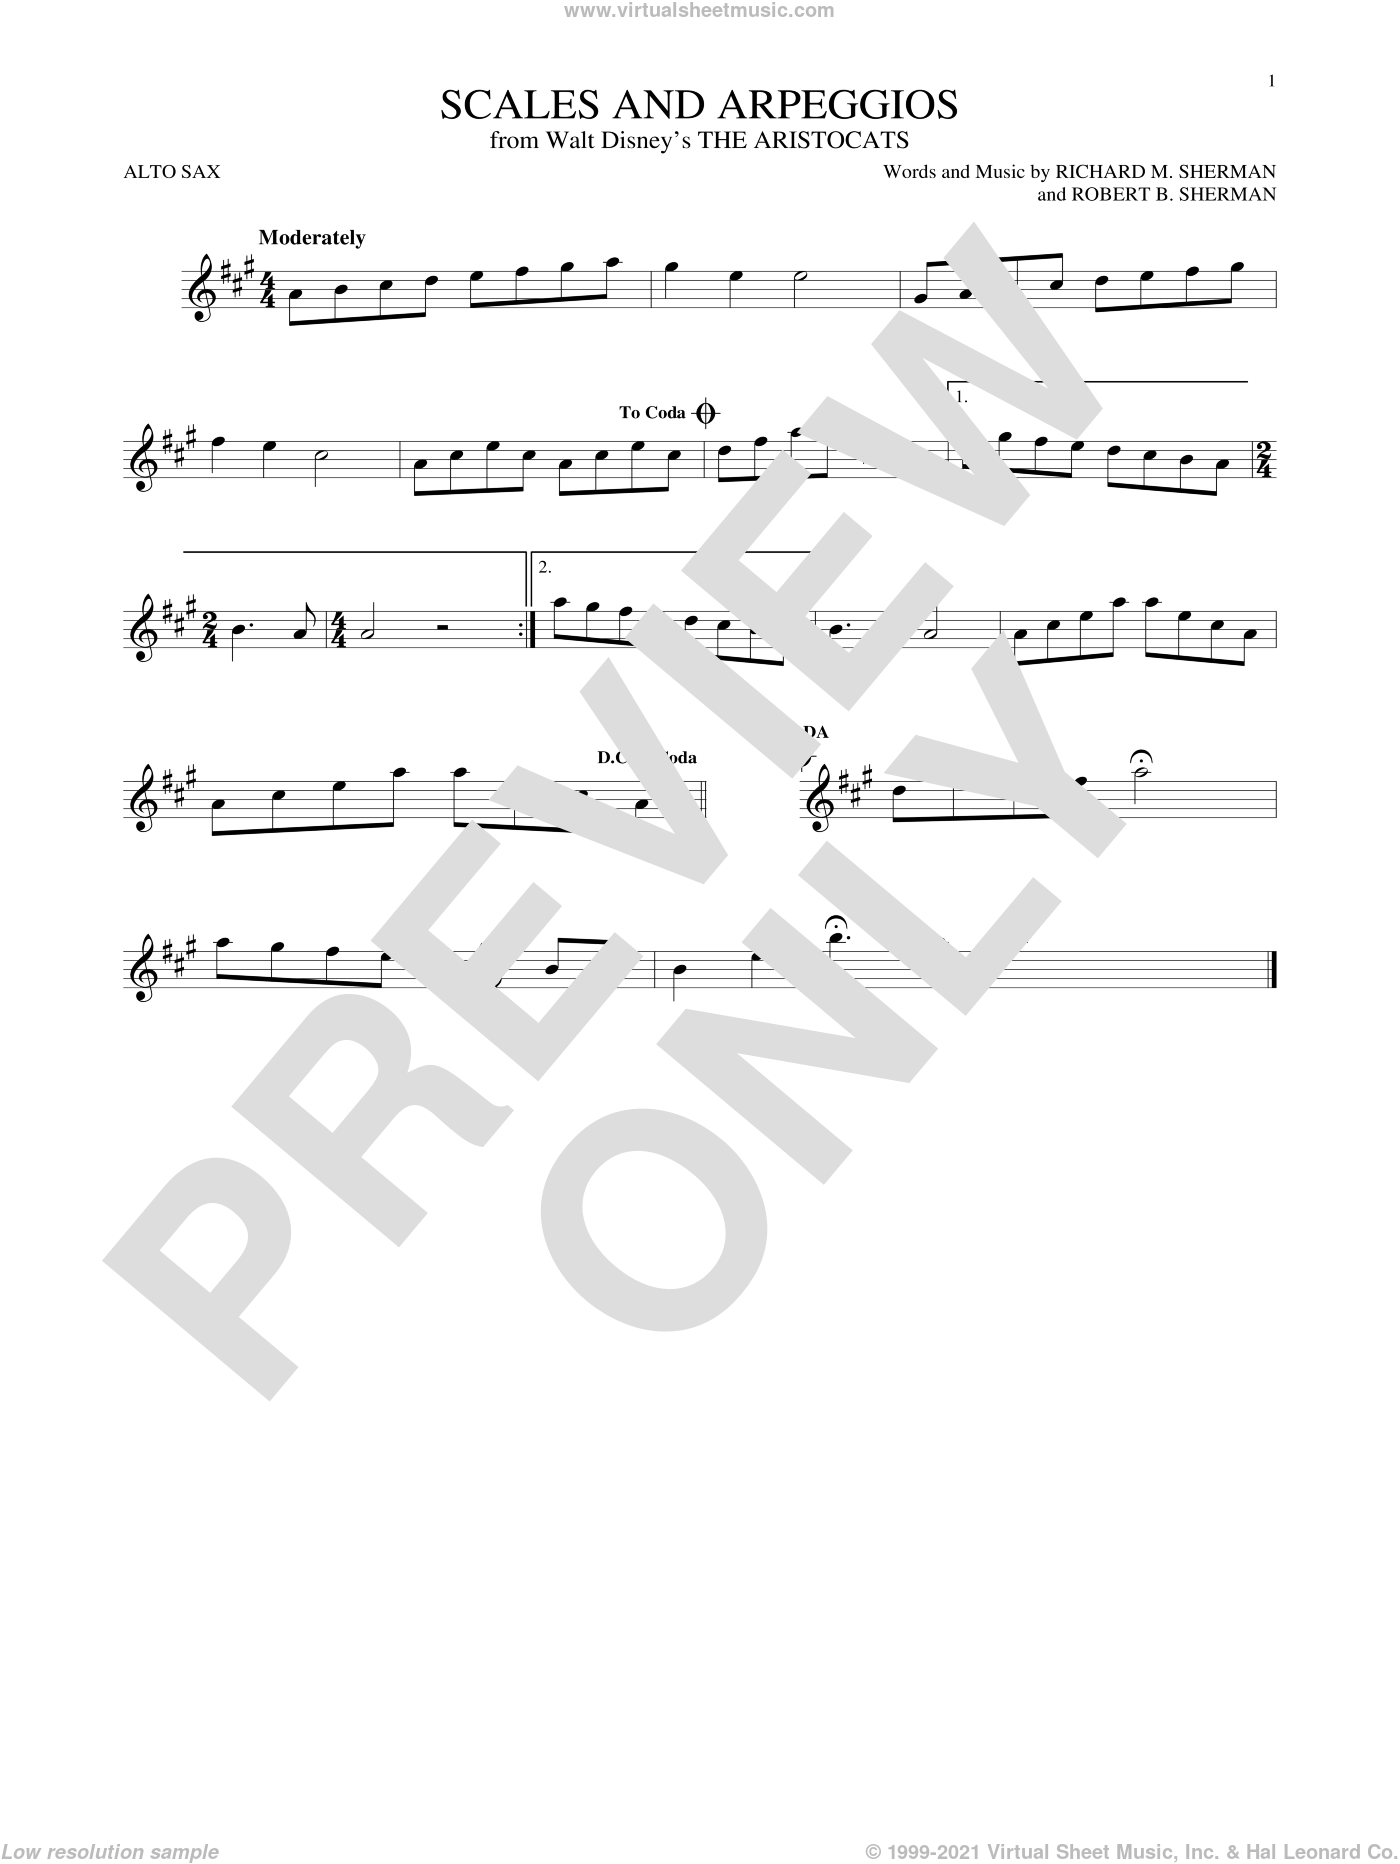 Scales And Arpeggios sheet music for alto saxophone solo by Richard M. Sherman, Richard & Robert Sherman and Robert B. Sherman, intermediate skill level